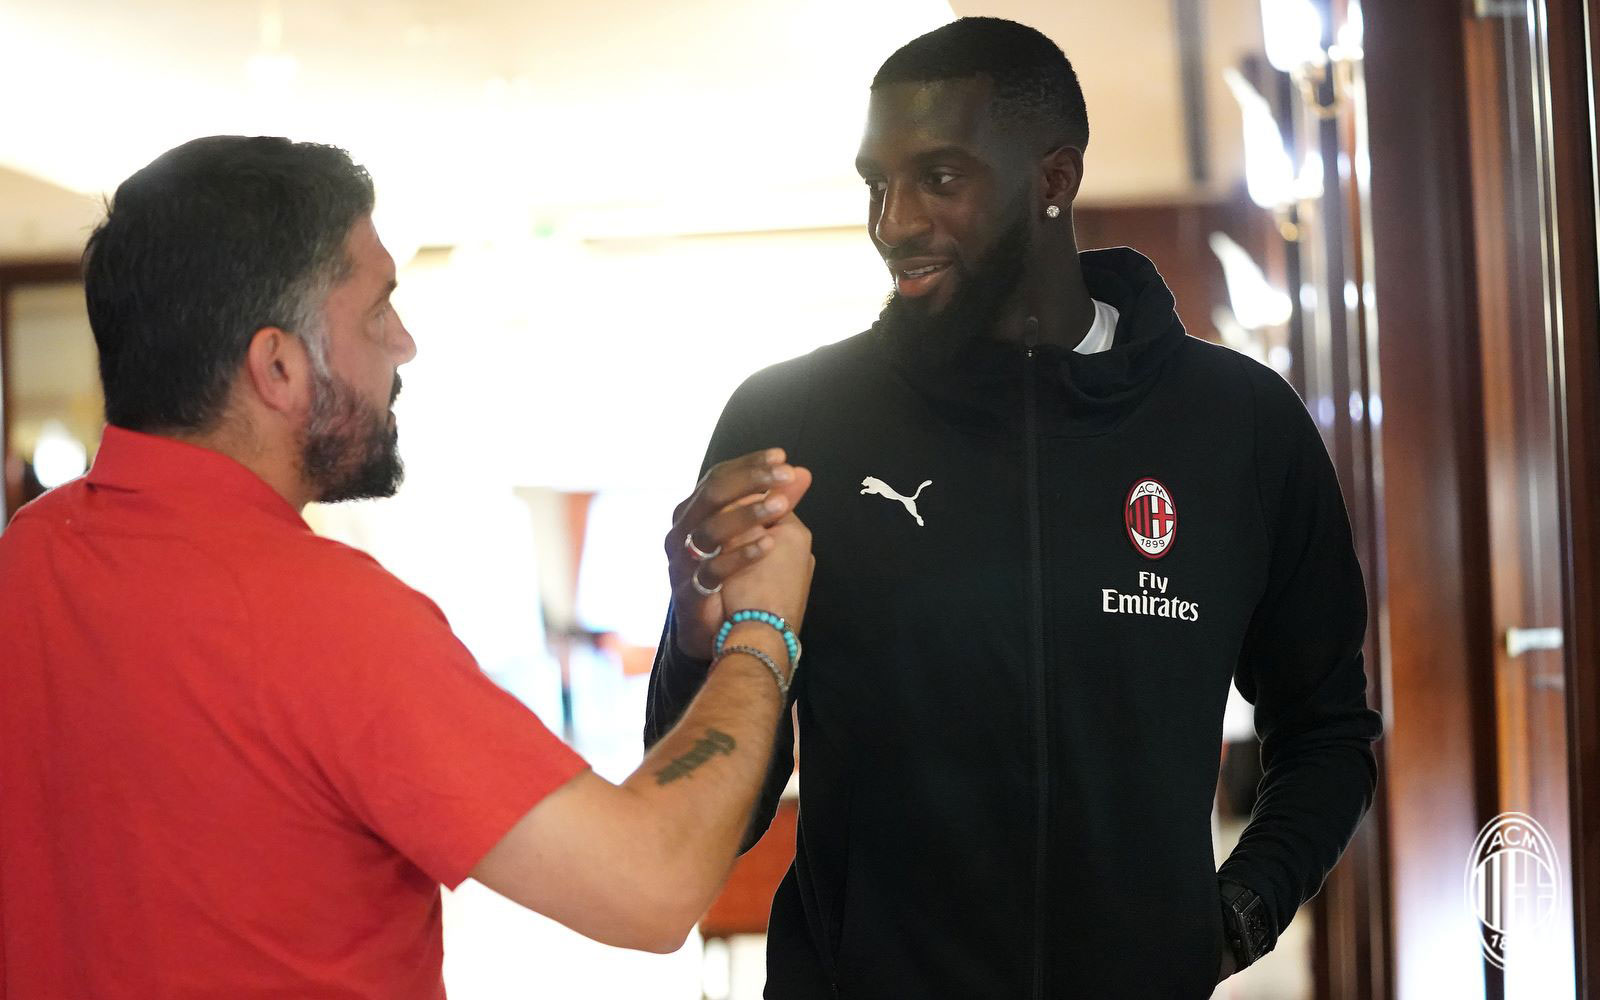 Tiémoué Bakayoko and Gennaro Gattuso during training. (@acmilan.com)